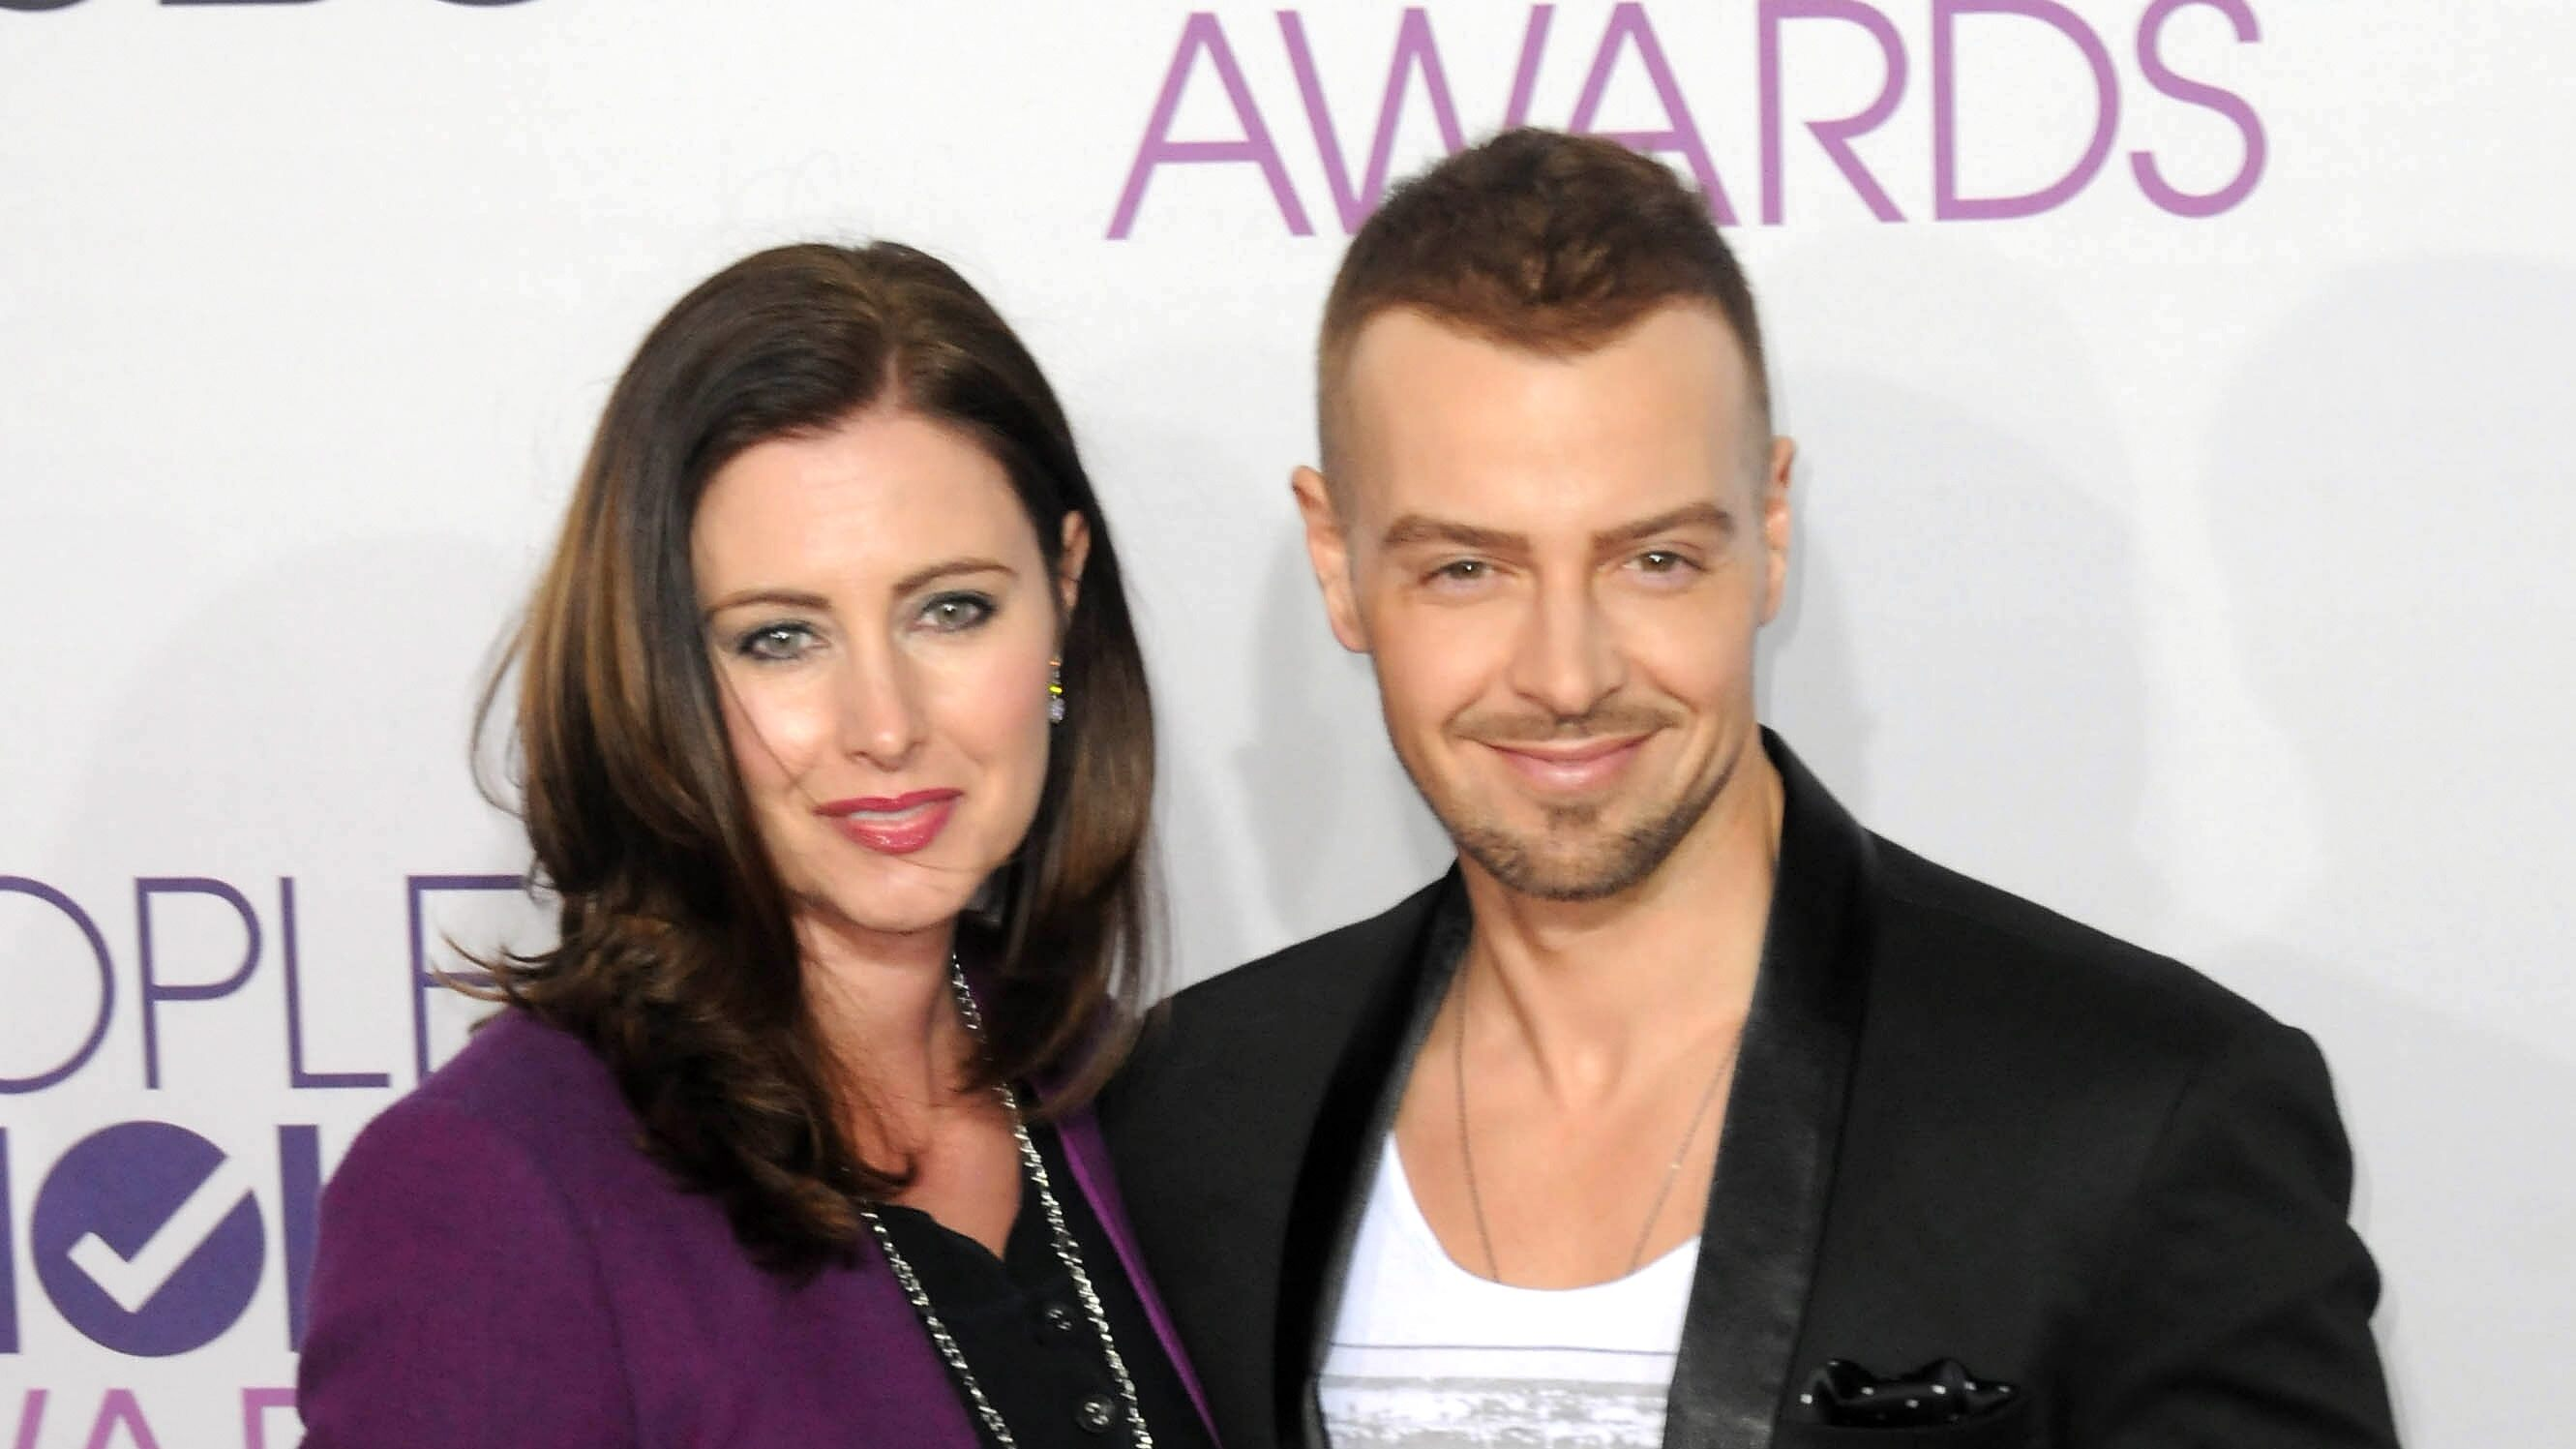 Joey Lawrence files for divorce from wife after almost 15 years of marriage: report